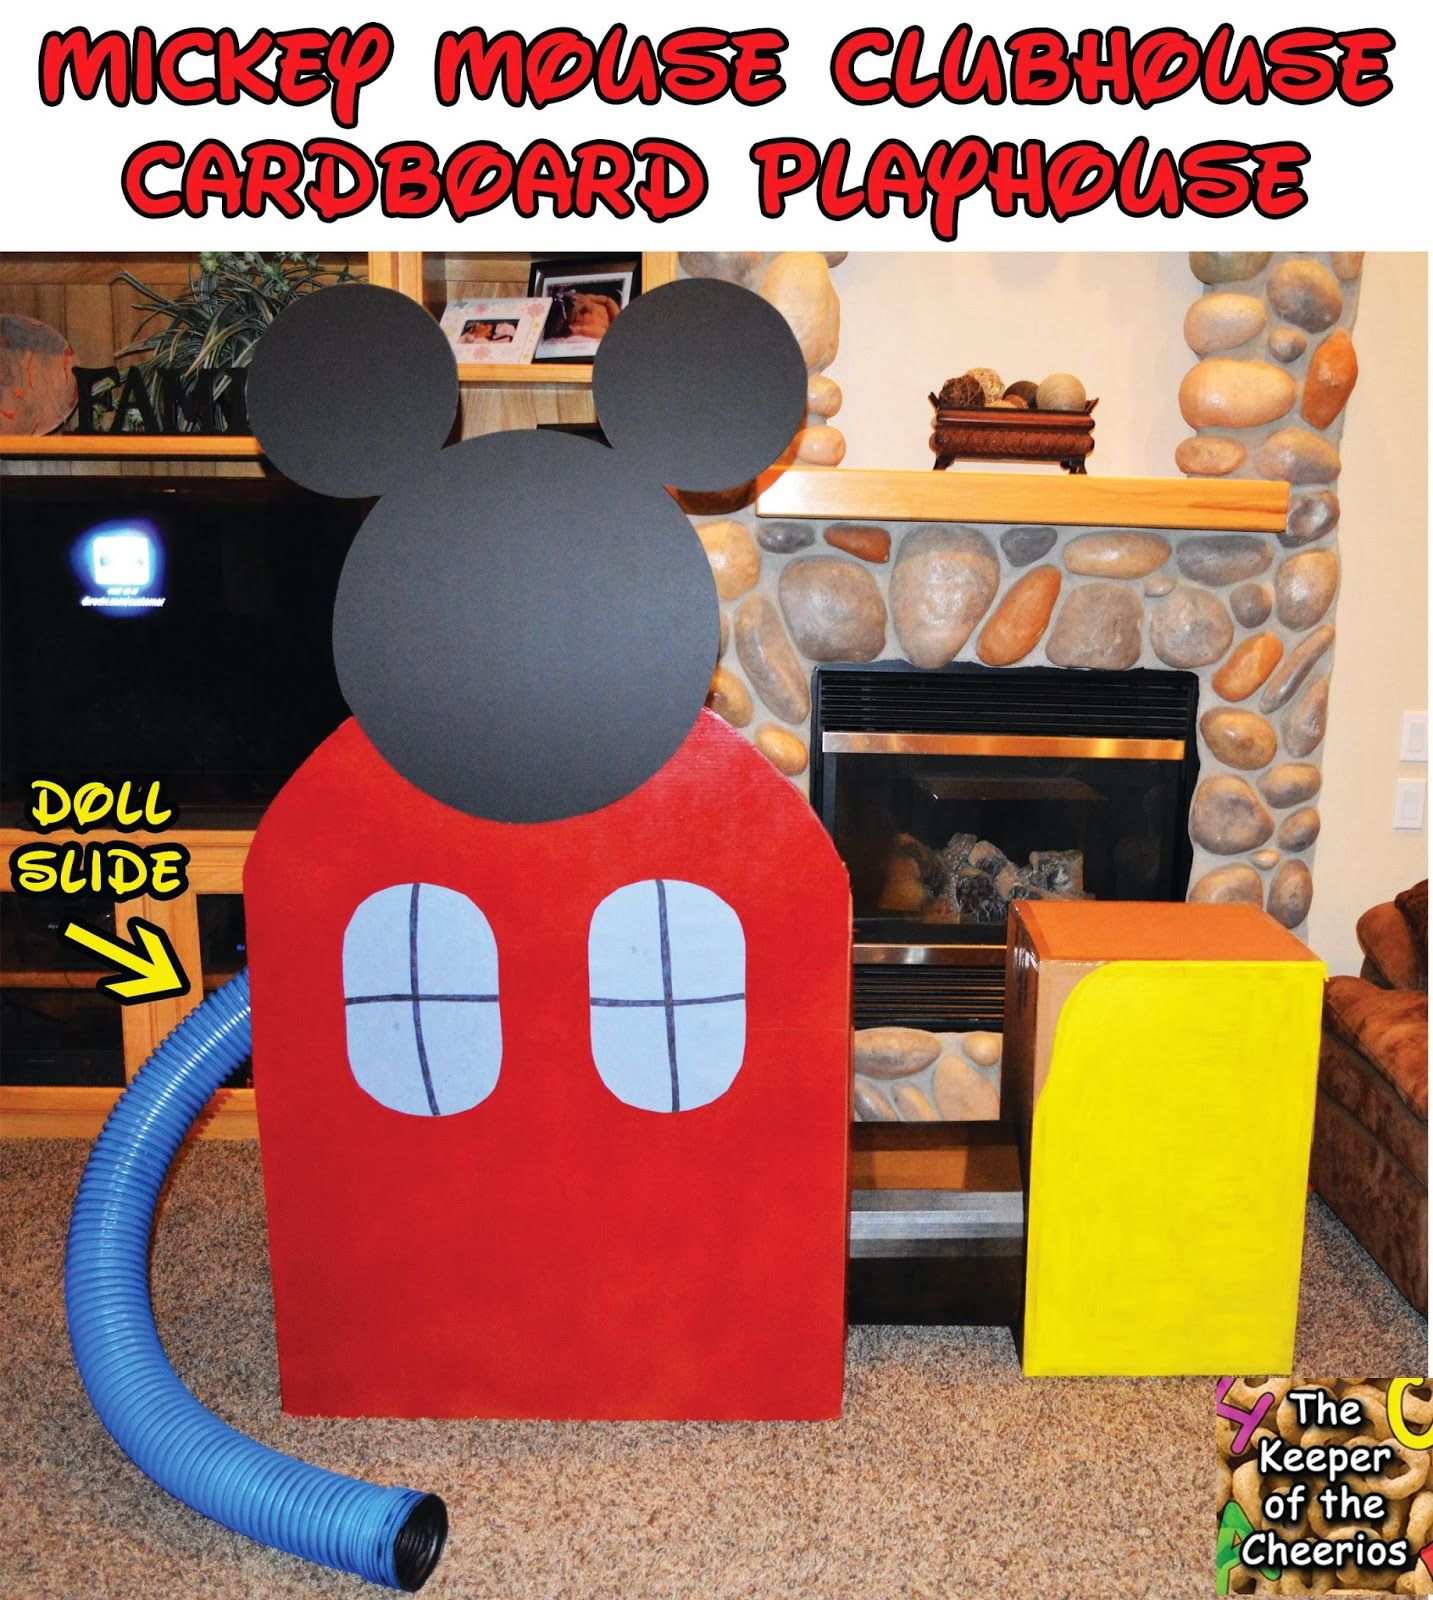 Mickey Mouse Clubhouse Cardboard Playhouse Life size playhouse with